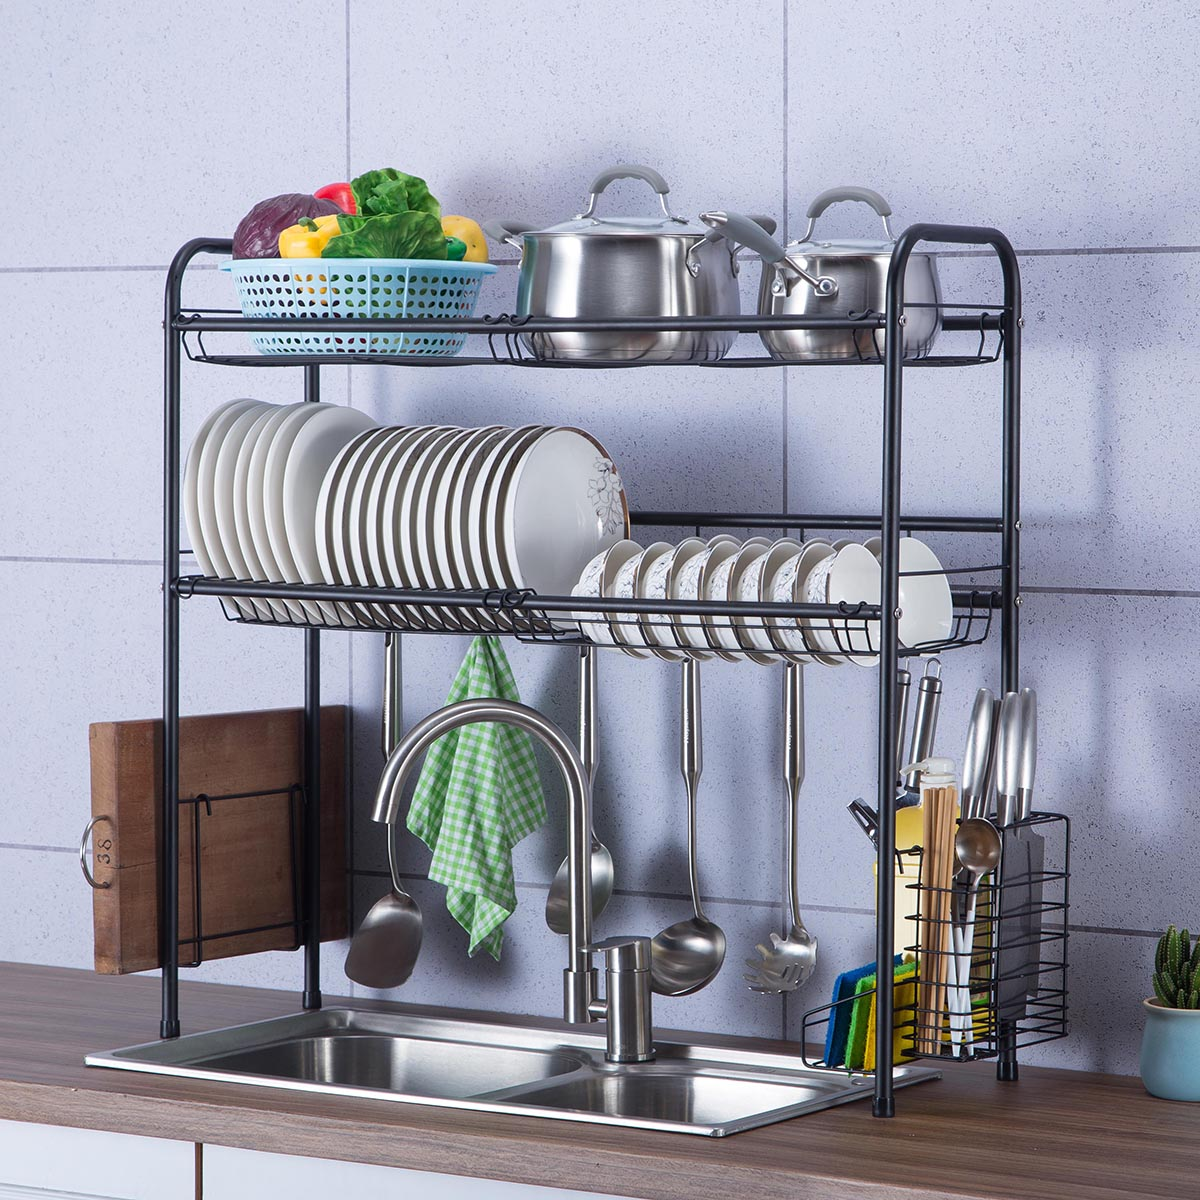 stainless steel dish drying rack over sink drain rack dish drainers shelf holder for home kitchen counter space saving walmart com